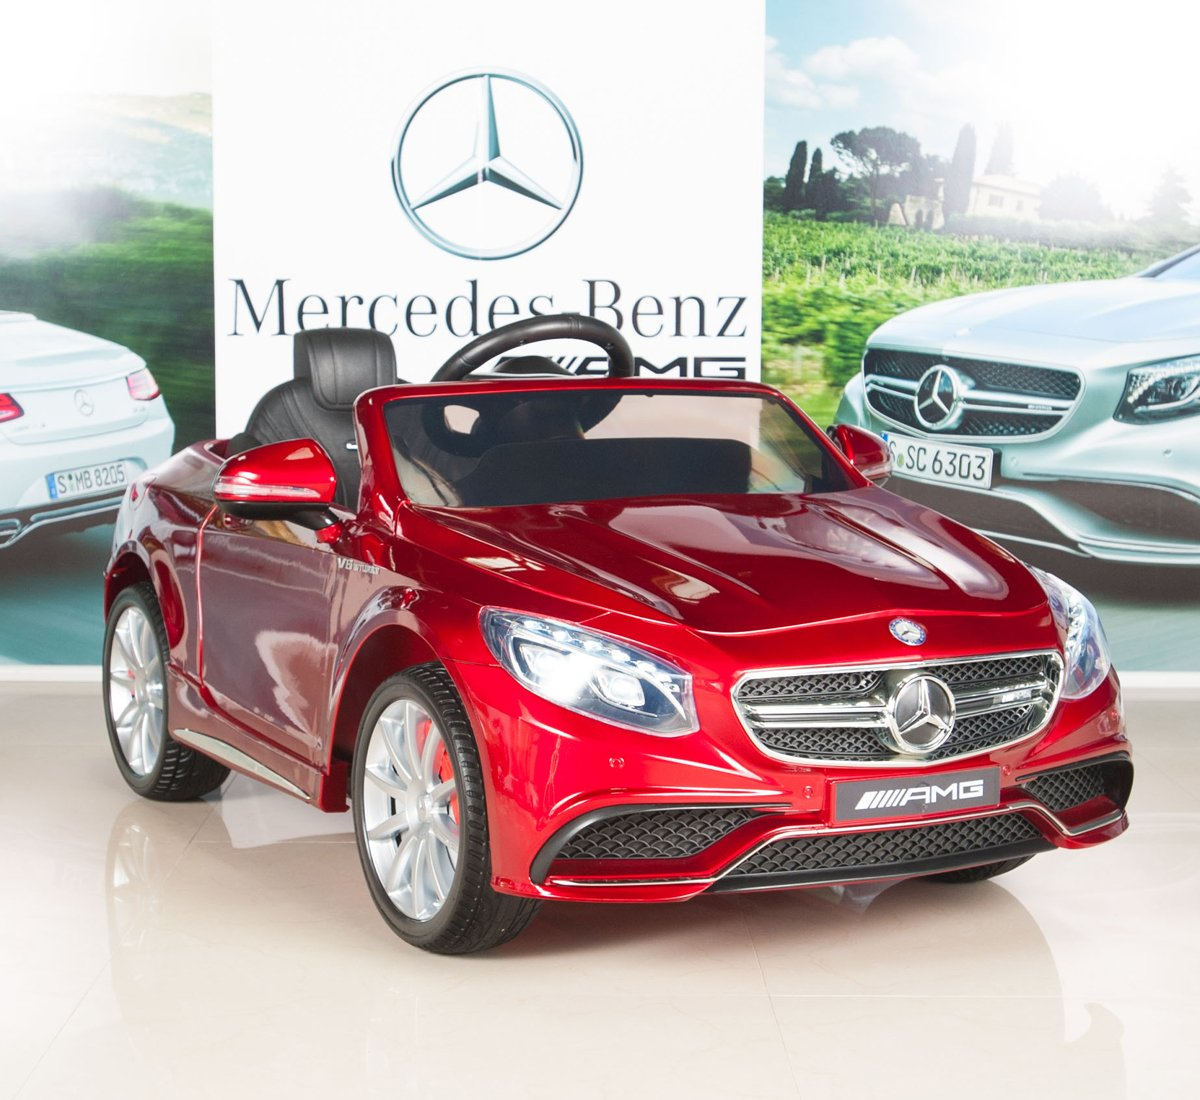 Mercedes-Benz S63 Ride on Car Kids RC Car Remote Control Electric Power Wheels W/ Radio & MP3 Red by BIG TOYS DIRECT